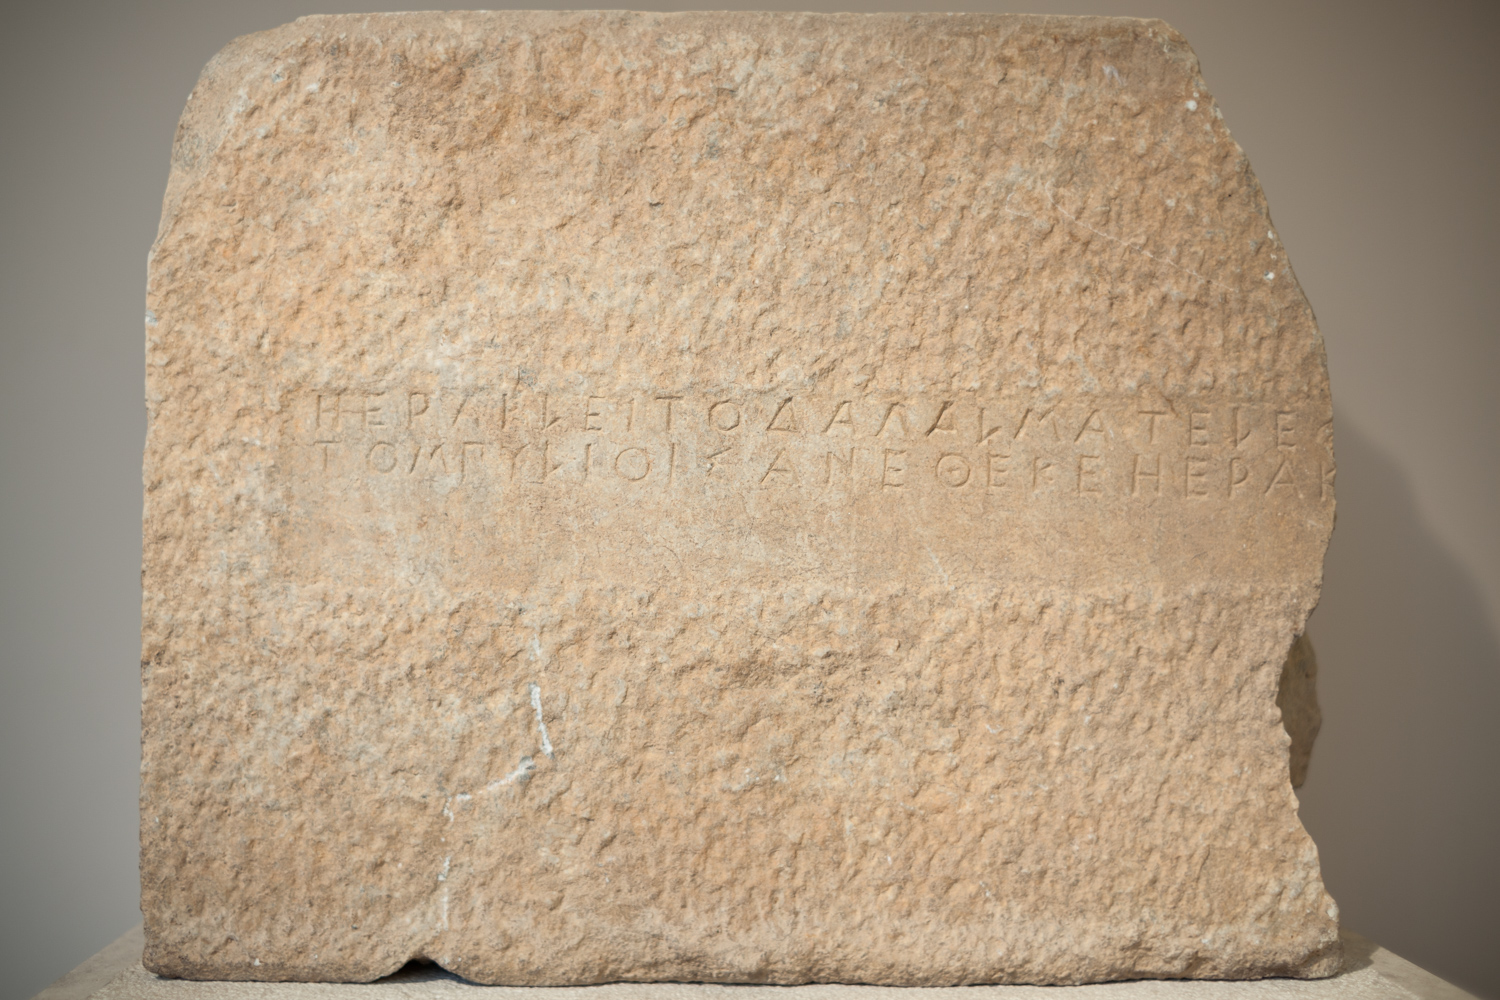 One of two inscriptions referring to the Sanctuary of Herakles, or Herakleion near to which, according to Herodotus, the Athenian army camped. Stele seen here in the Archaeological Museum of Marathon.